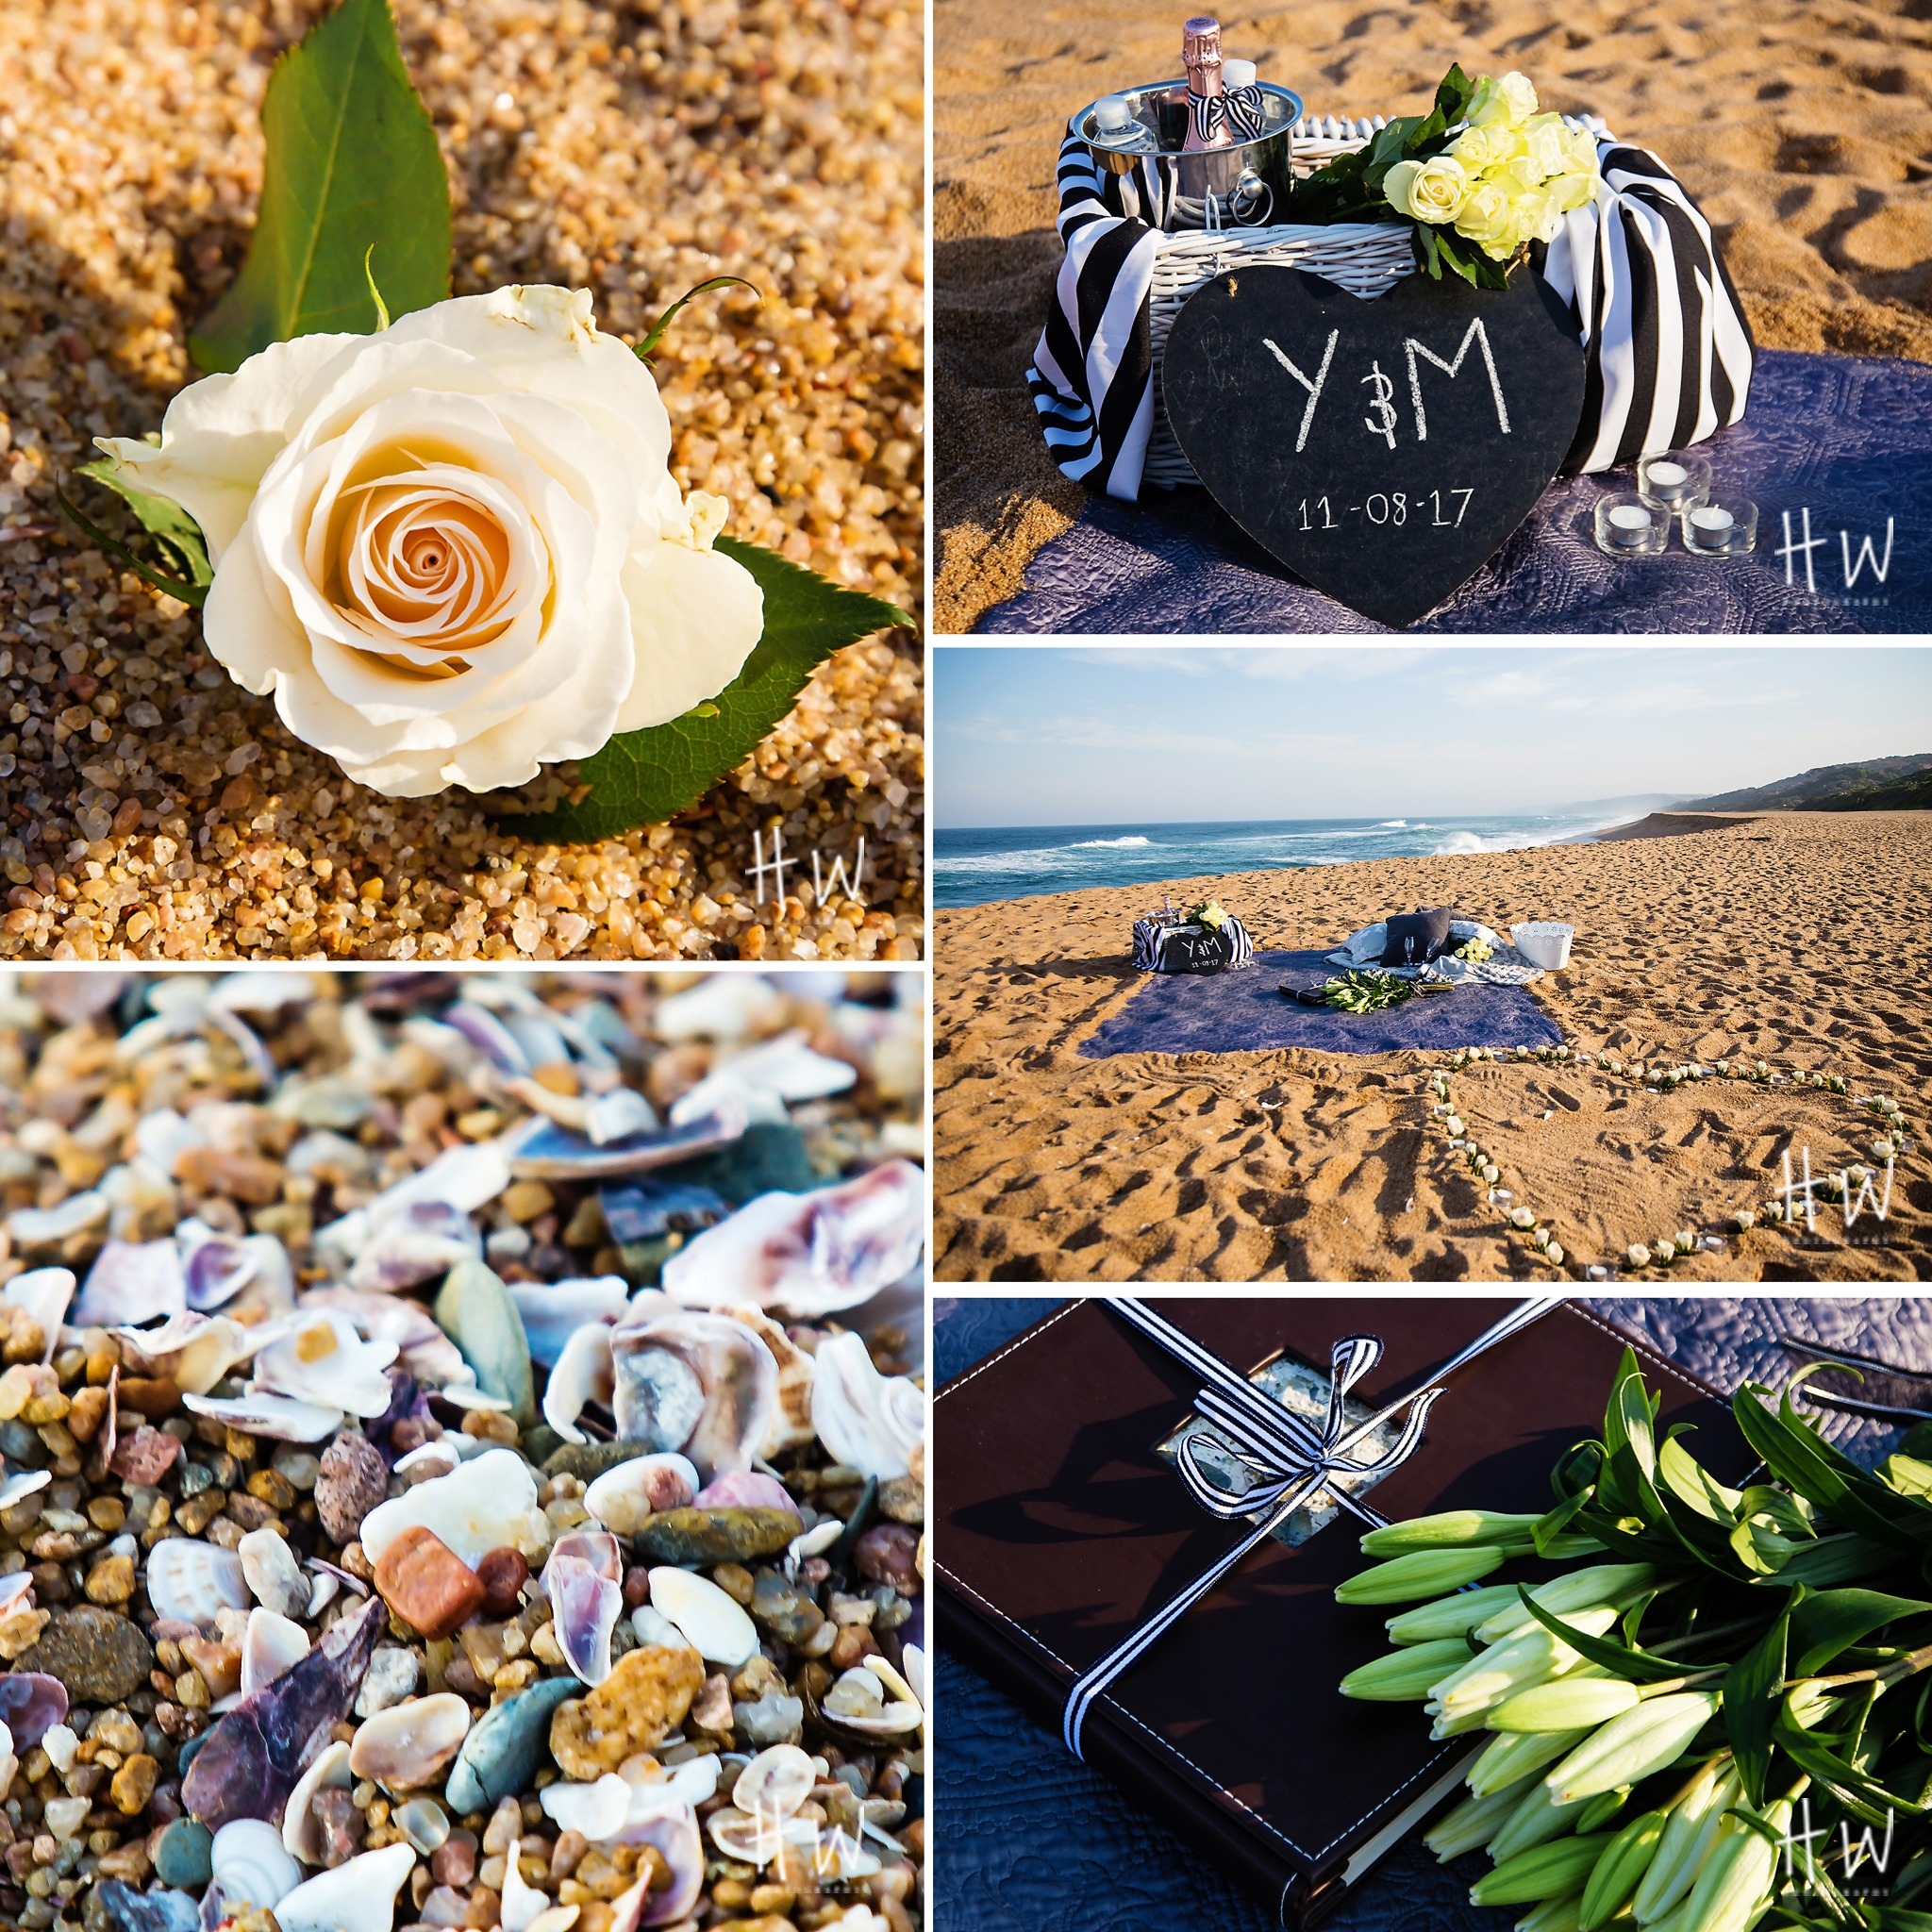 Wedding Proposal Ideas Beach: Yudish And Mishara Marriage Proposal On The Beach